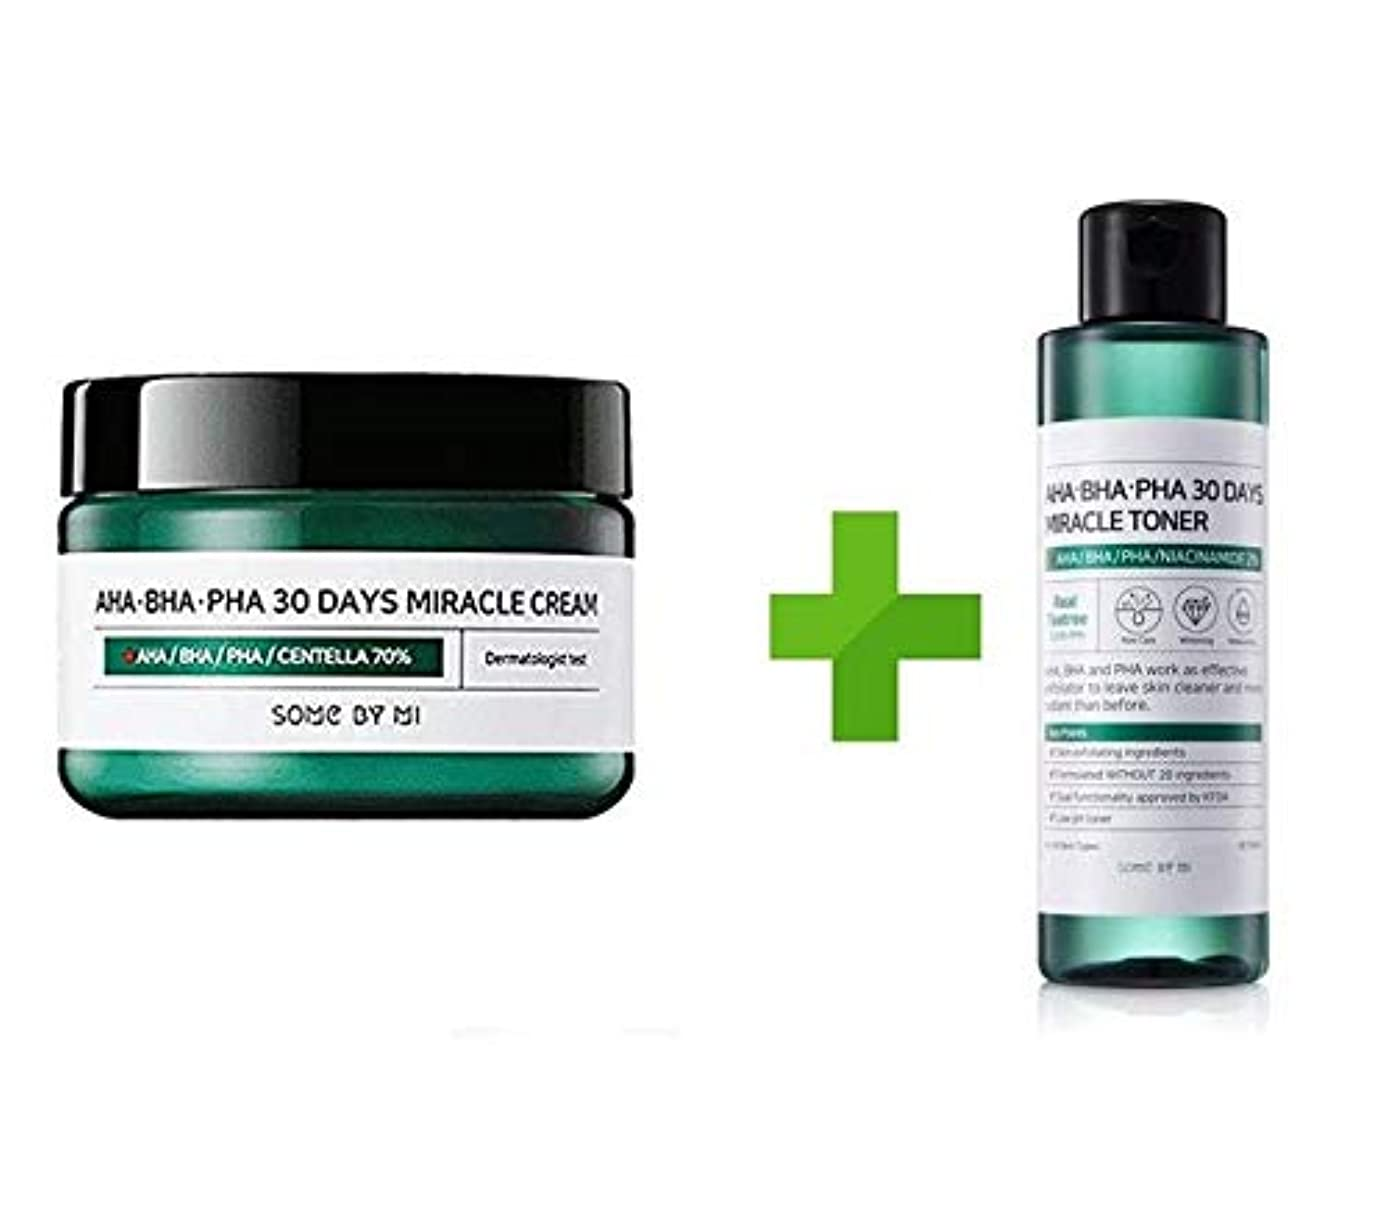 列車とティーム十分ではないSomebymi AHA BHA PHA Miracle Cream (50ml + Toner 150ml)Skin Barrier & Recovery, Soothing with Tea Tree 10,000ppm...